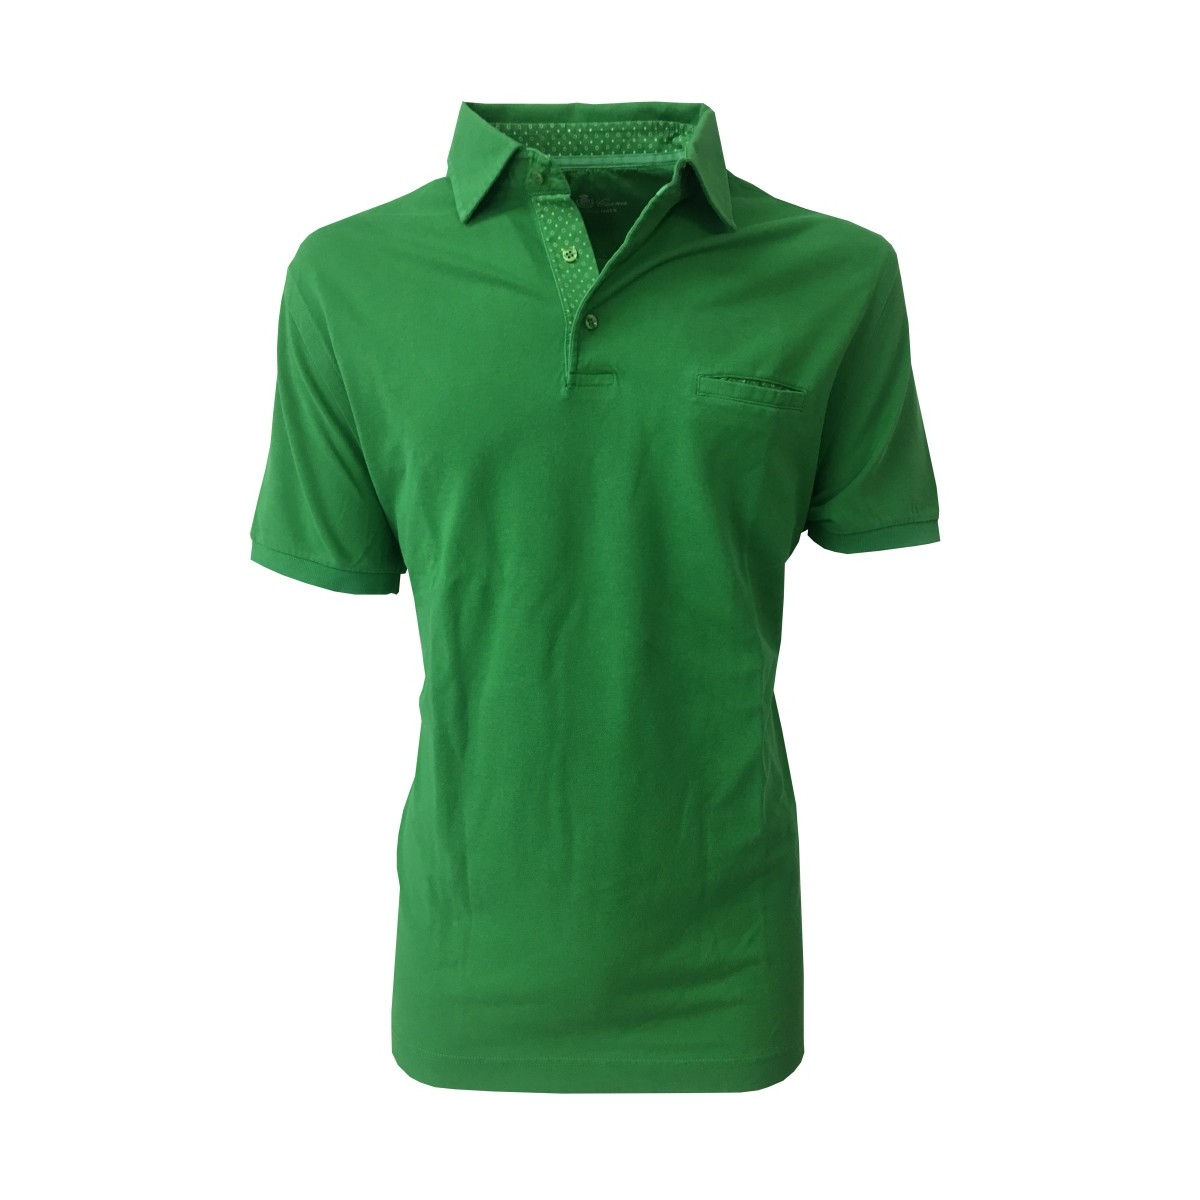 enorme sconto 0b8f4 d601c DELLA CIANA man polo half sleeve green with pocket100 ...